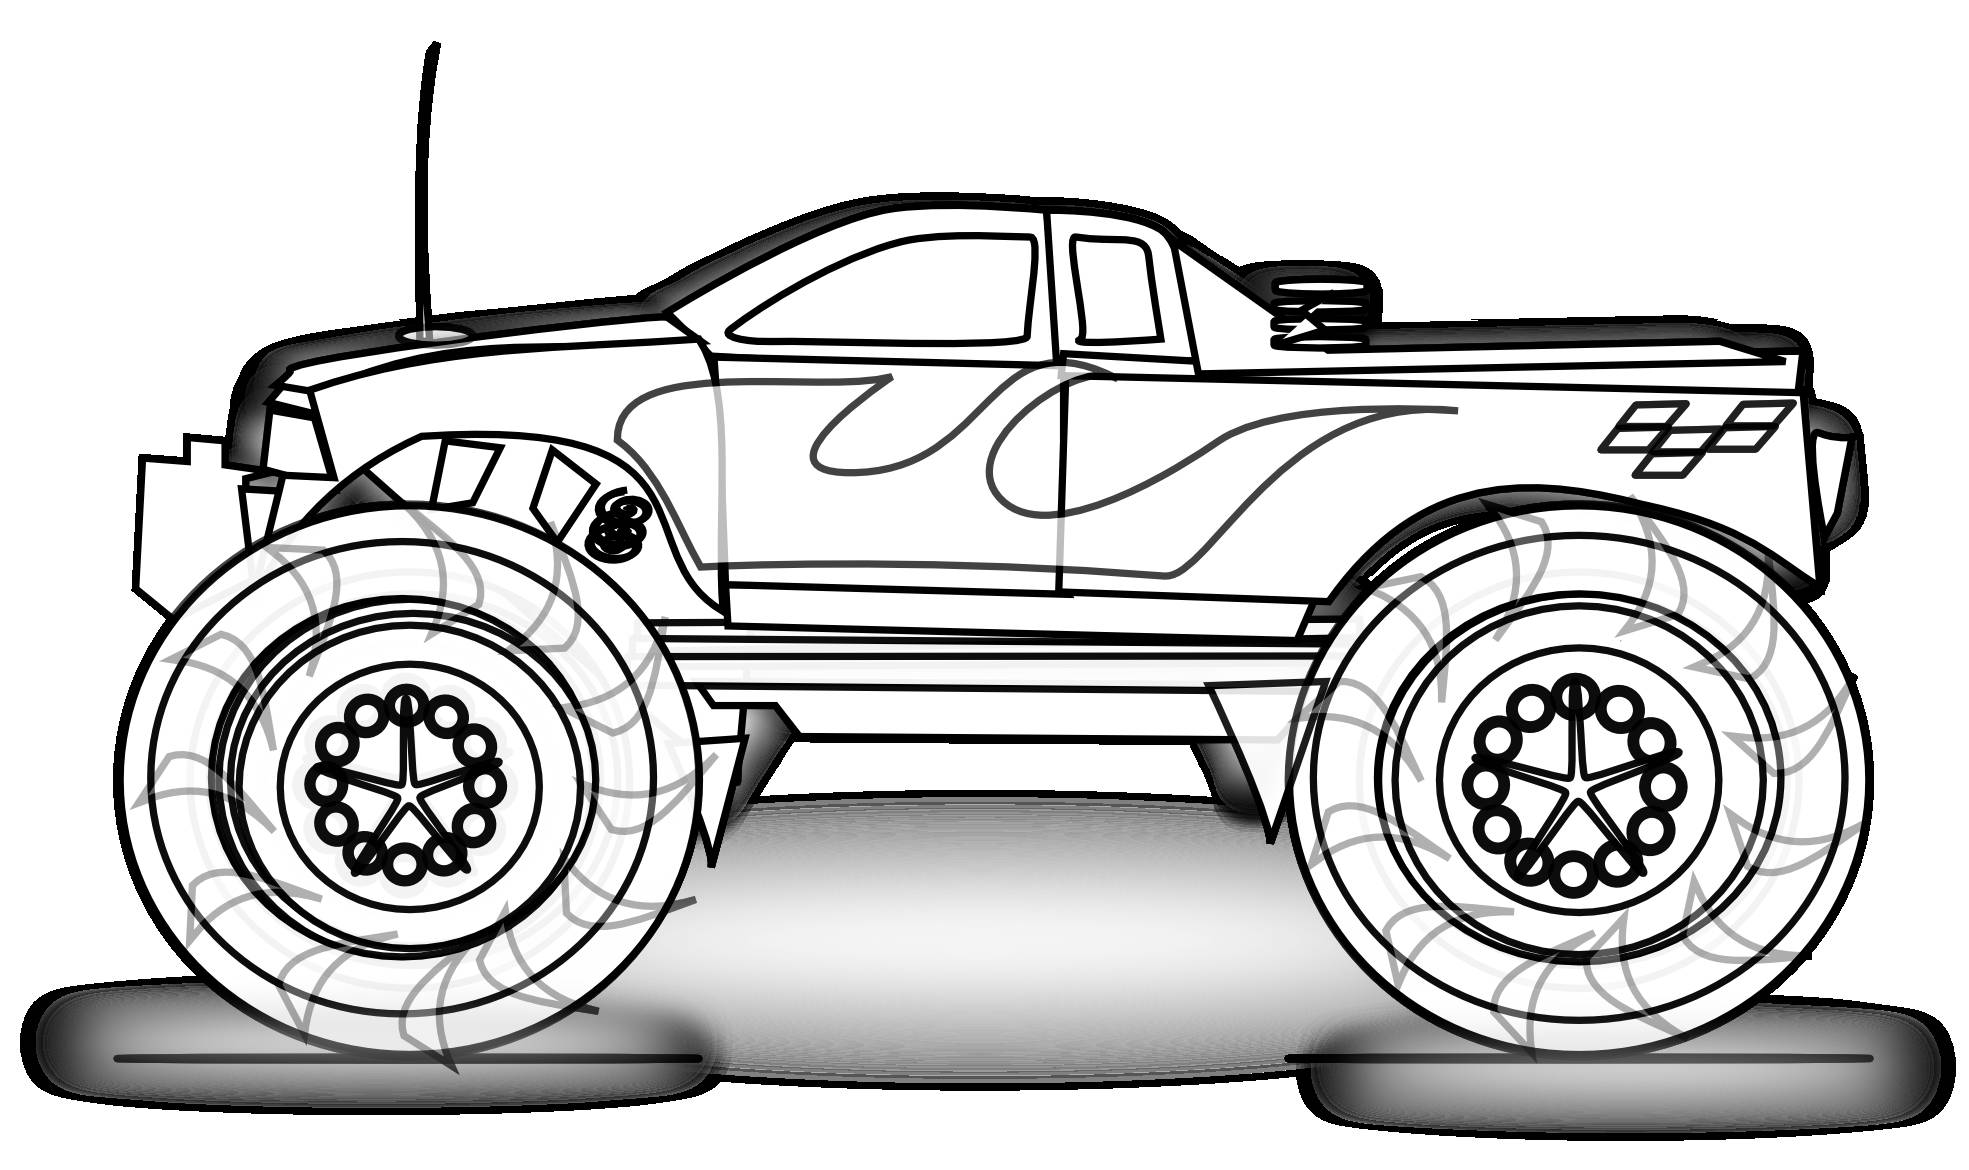 Co co coloring sheets free for kids - Co Colouring Pages For Truck Monster Truck Printable Coloring Pages Sheet Id 5831